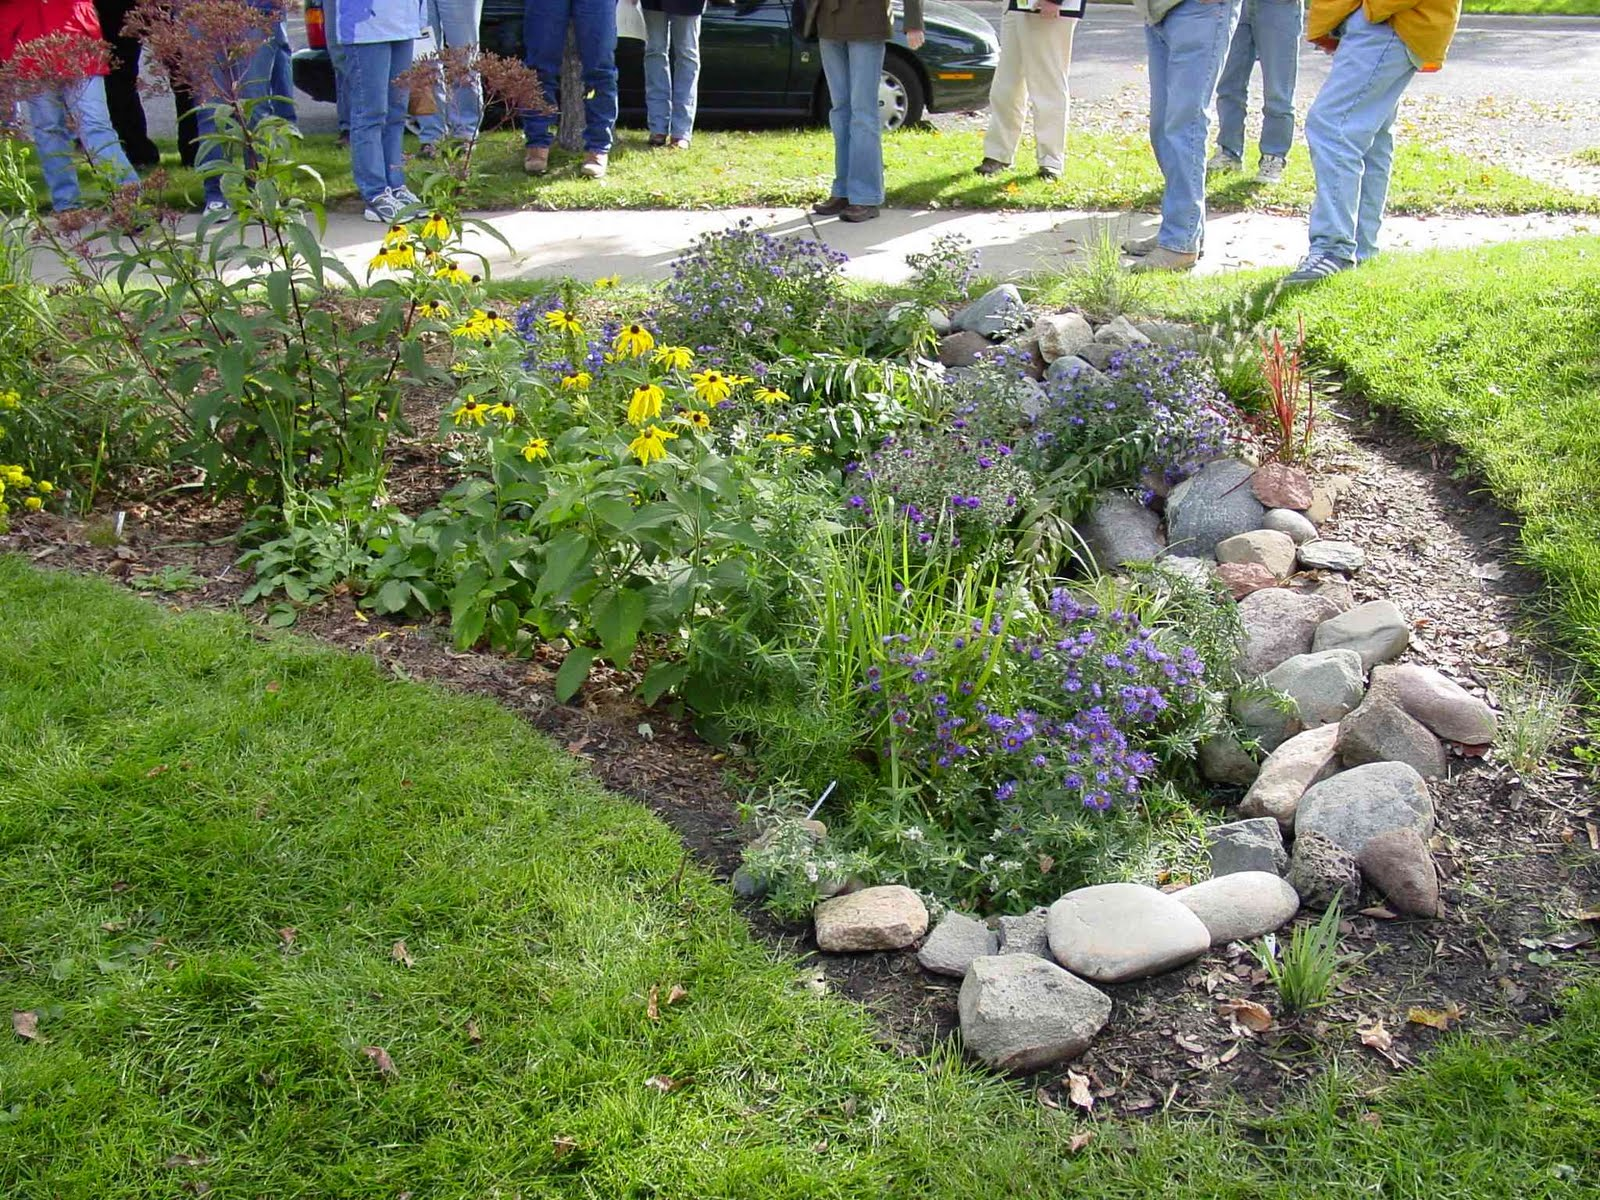 A complete guide to building and maintaining a rain garden ... on burn pit design plans, raised bed vegetable garden design plans, large garden layout plans, patio garden design plans, border garden design plans, cottage garden design plans, fountain design plans, rose garden design plans, container garden design plans, butterfly garden design plans, residential landscape design plans, small garden design plans, roof garden design plans, community garden design plans, perennial garden design plans, tropical garden design plans, prairie garden design plans, design your own garden plans, small wind turbine design plans, green roof design plans,